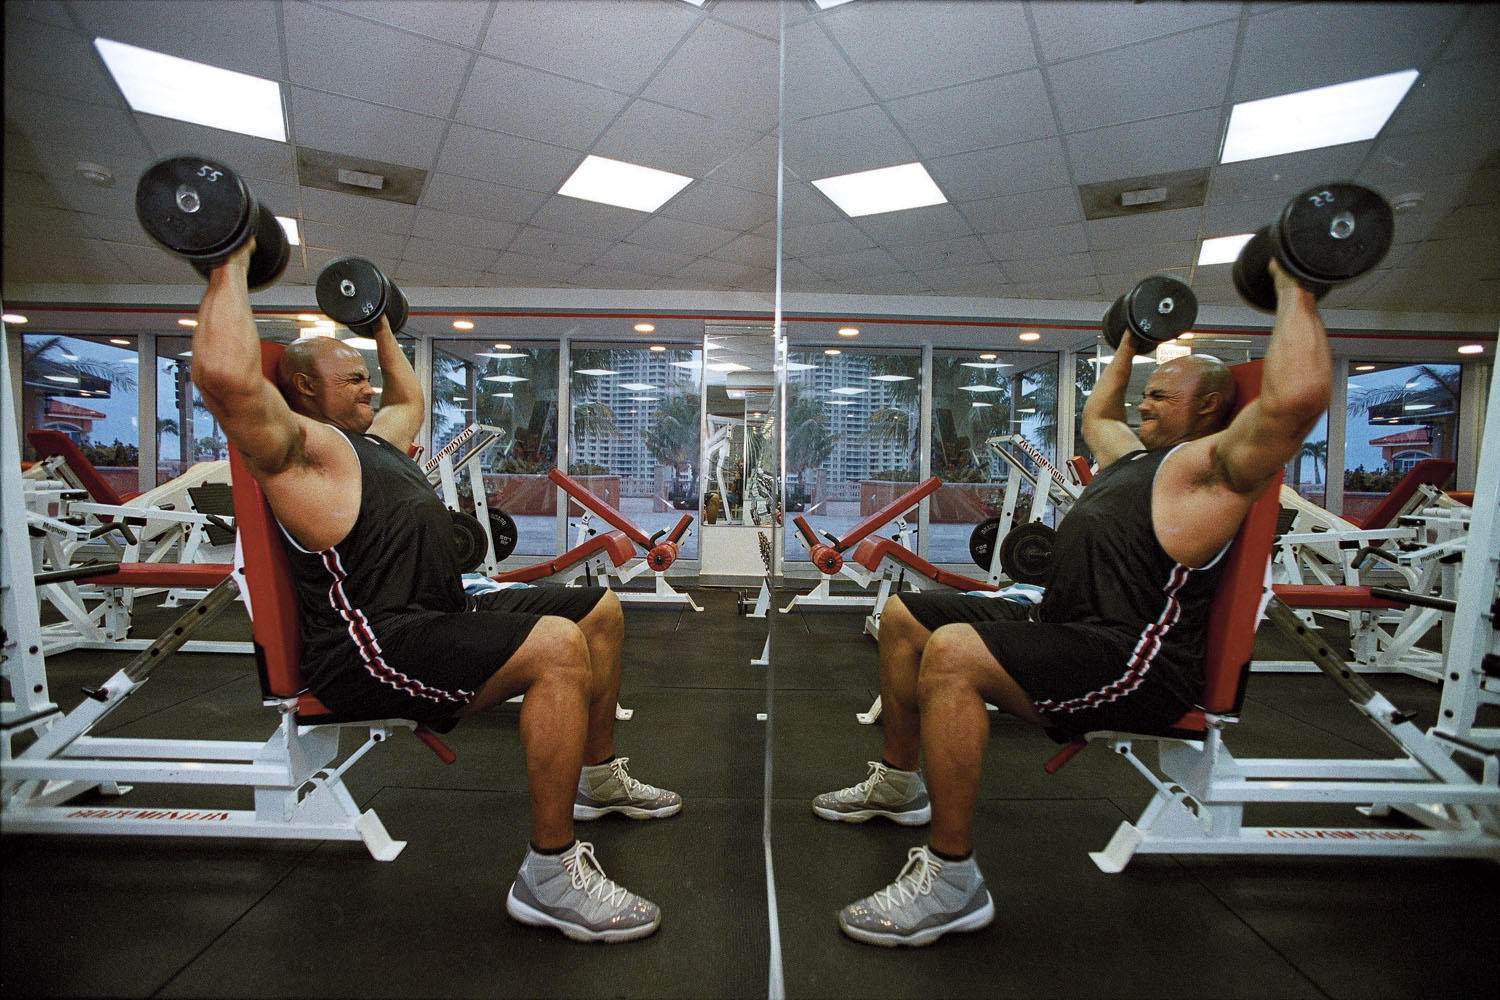 Former NBA star and TNT announcer Charles Barkley lifting weights at hotel gym in Miami, Florida in 2002.